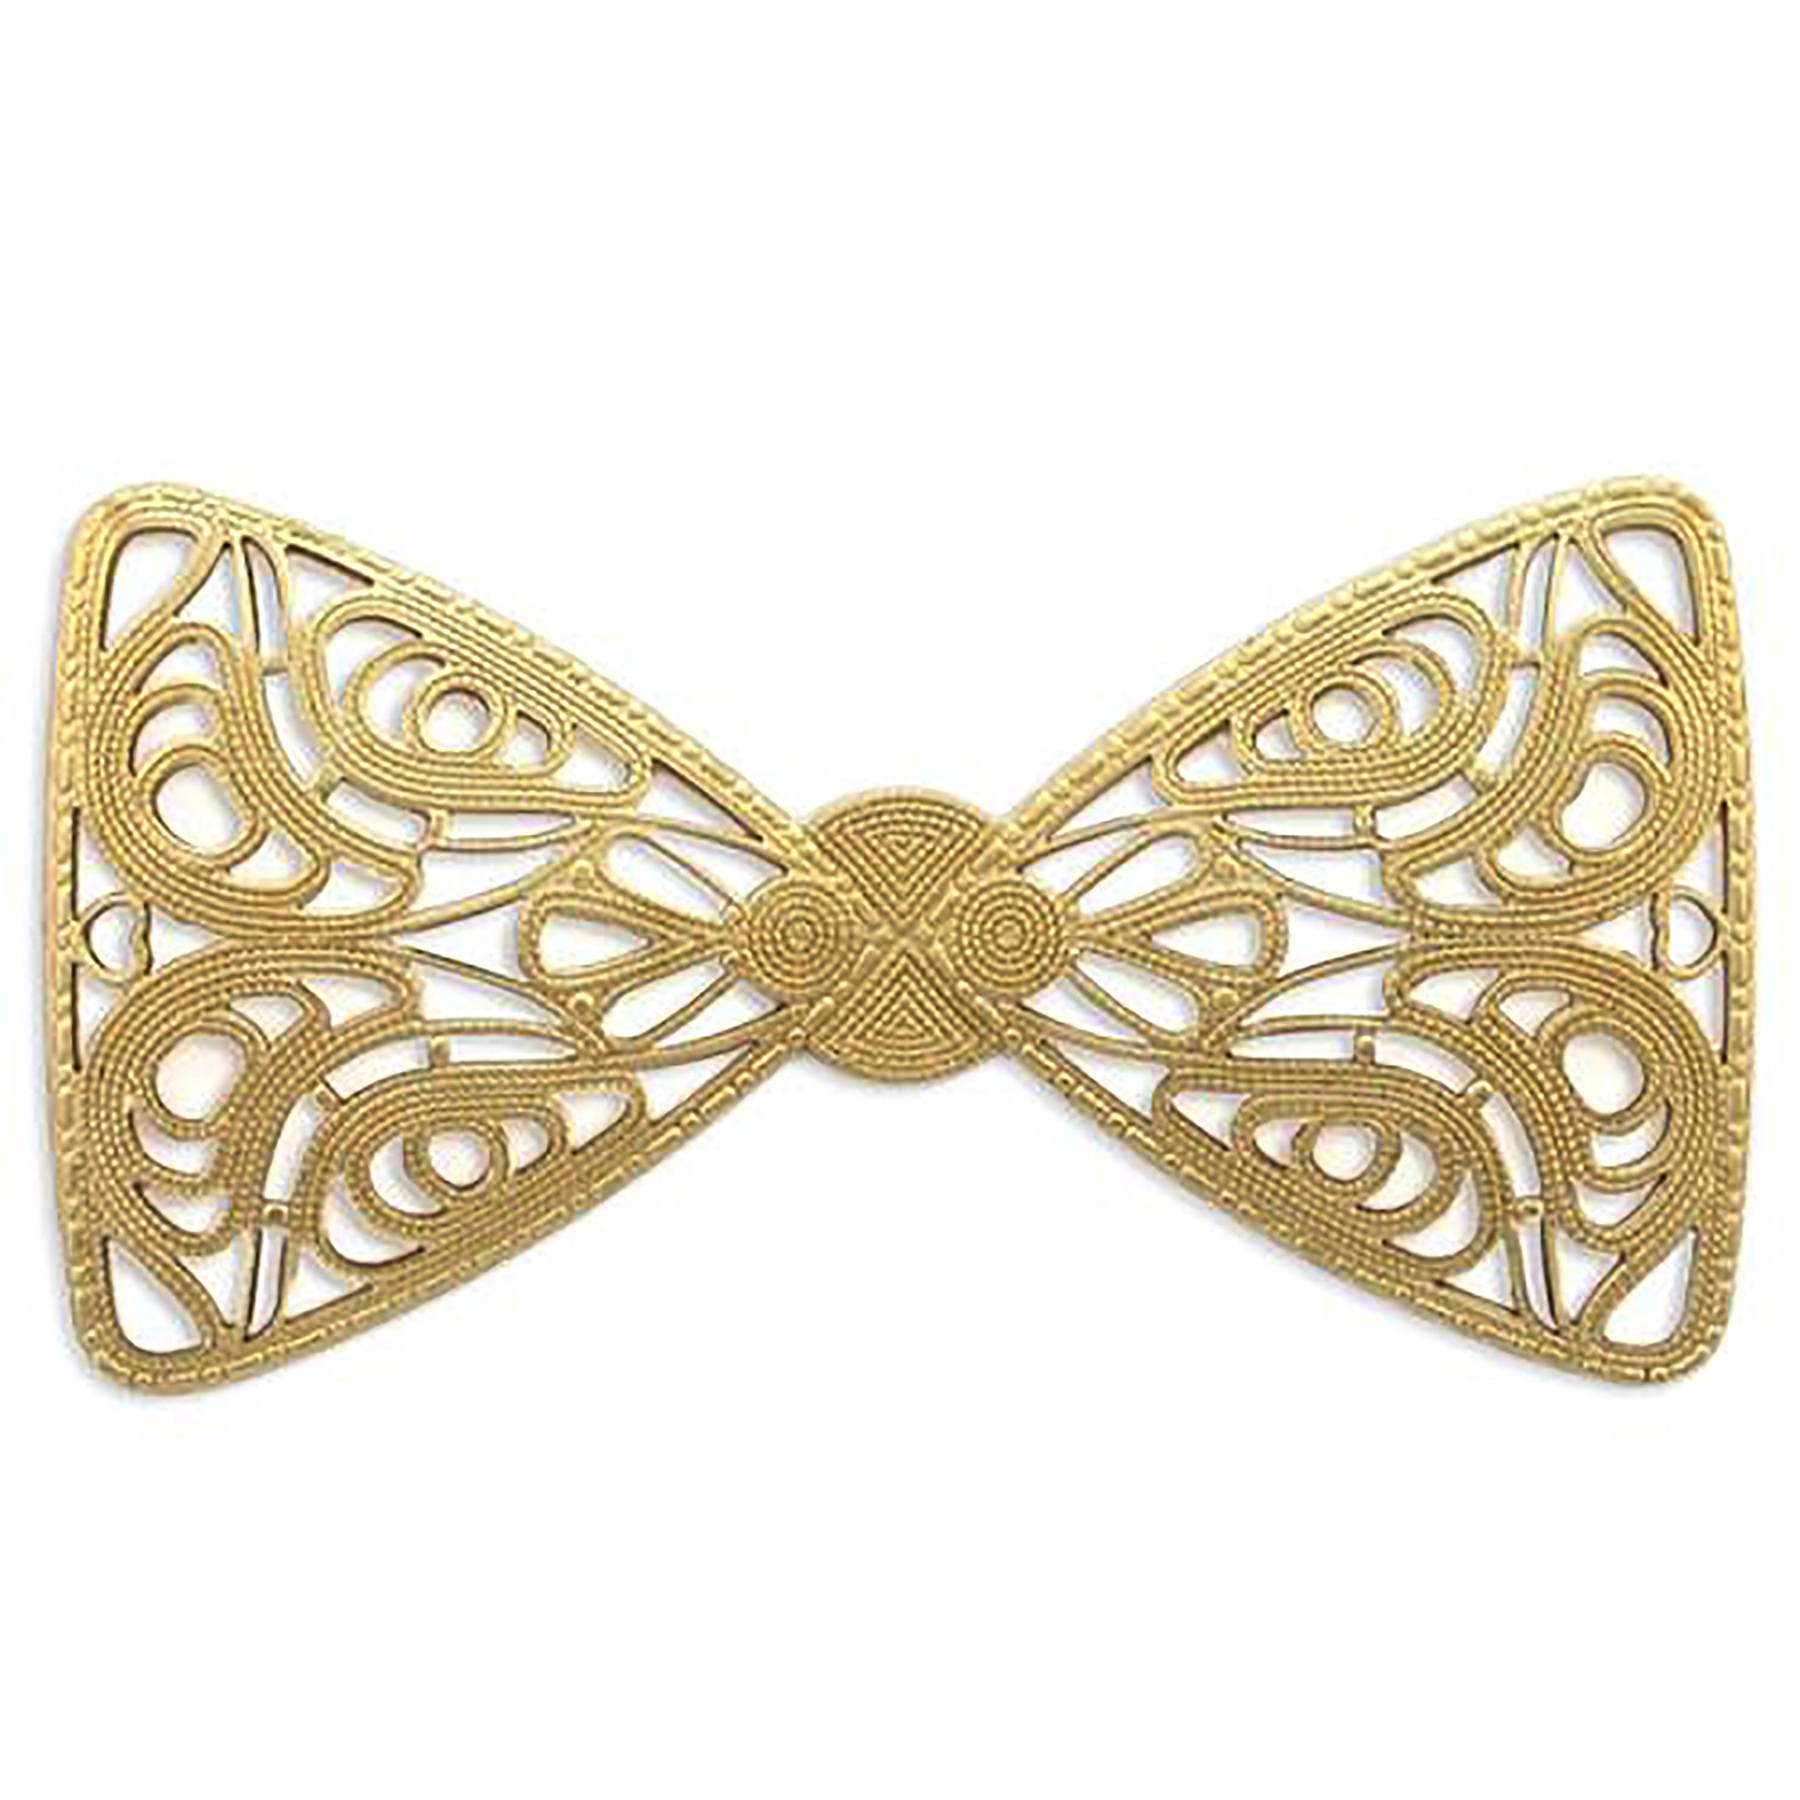 brass filigree, bow tie filigree, raw brass, 03737, large bow, bsueboutiques, nickel free, US made, jewelry findings, jewelry making supplies, vintage jewelry supplies, dapt filigree bow, bow centerpiece, unplated brass